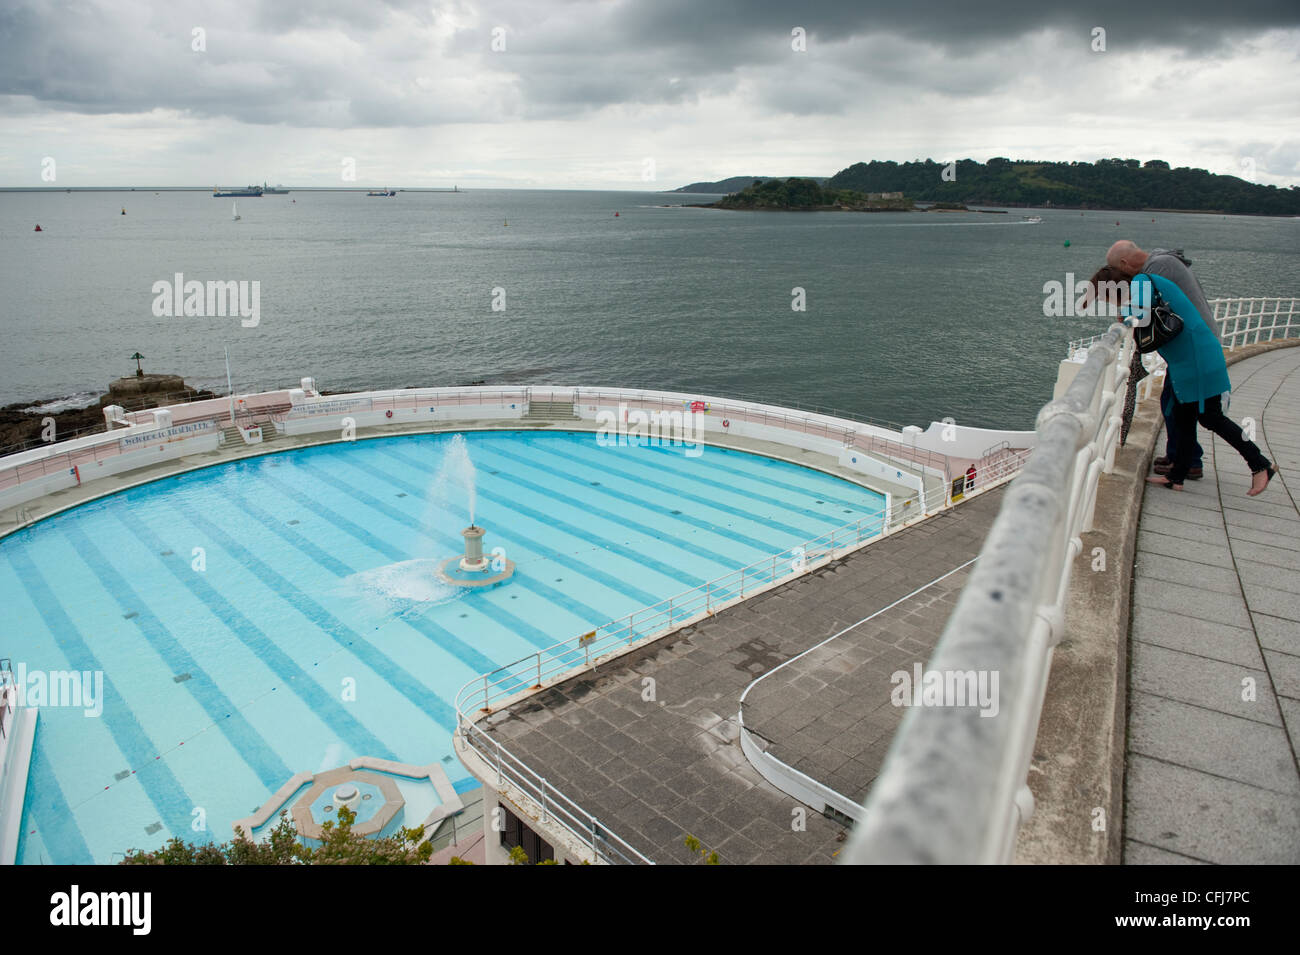 A couple lean over a railing to see the Tinside Lido outdoor swimming pool in Plymouth. - Stock Image